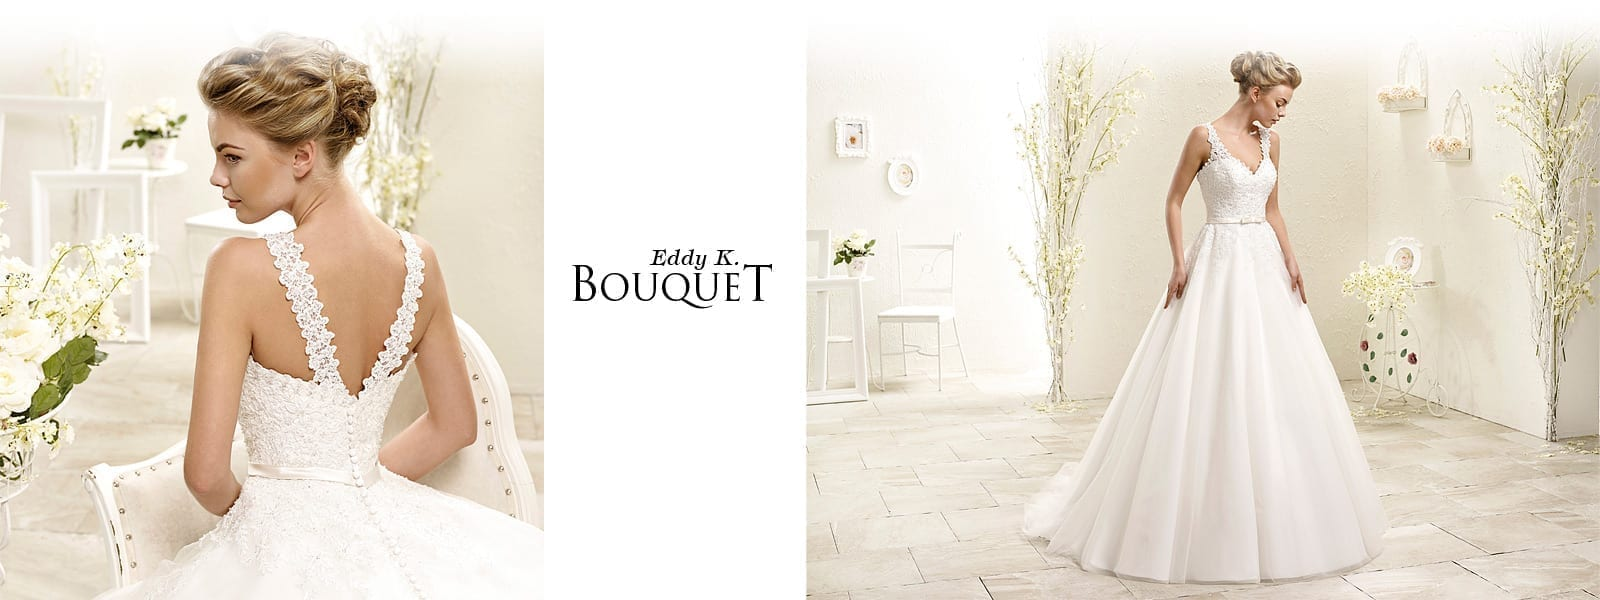 Bouquet-Header